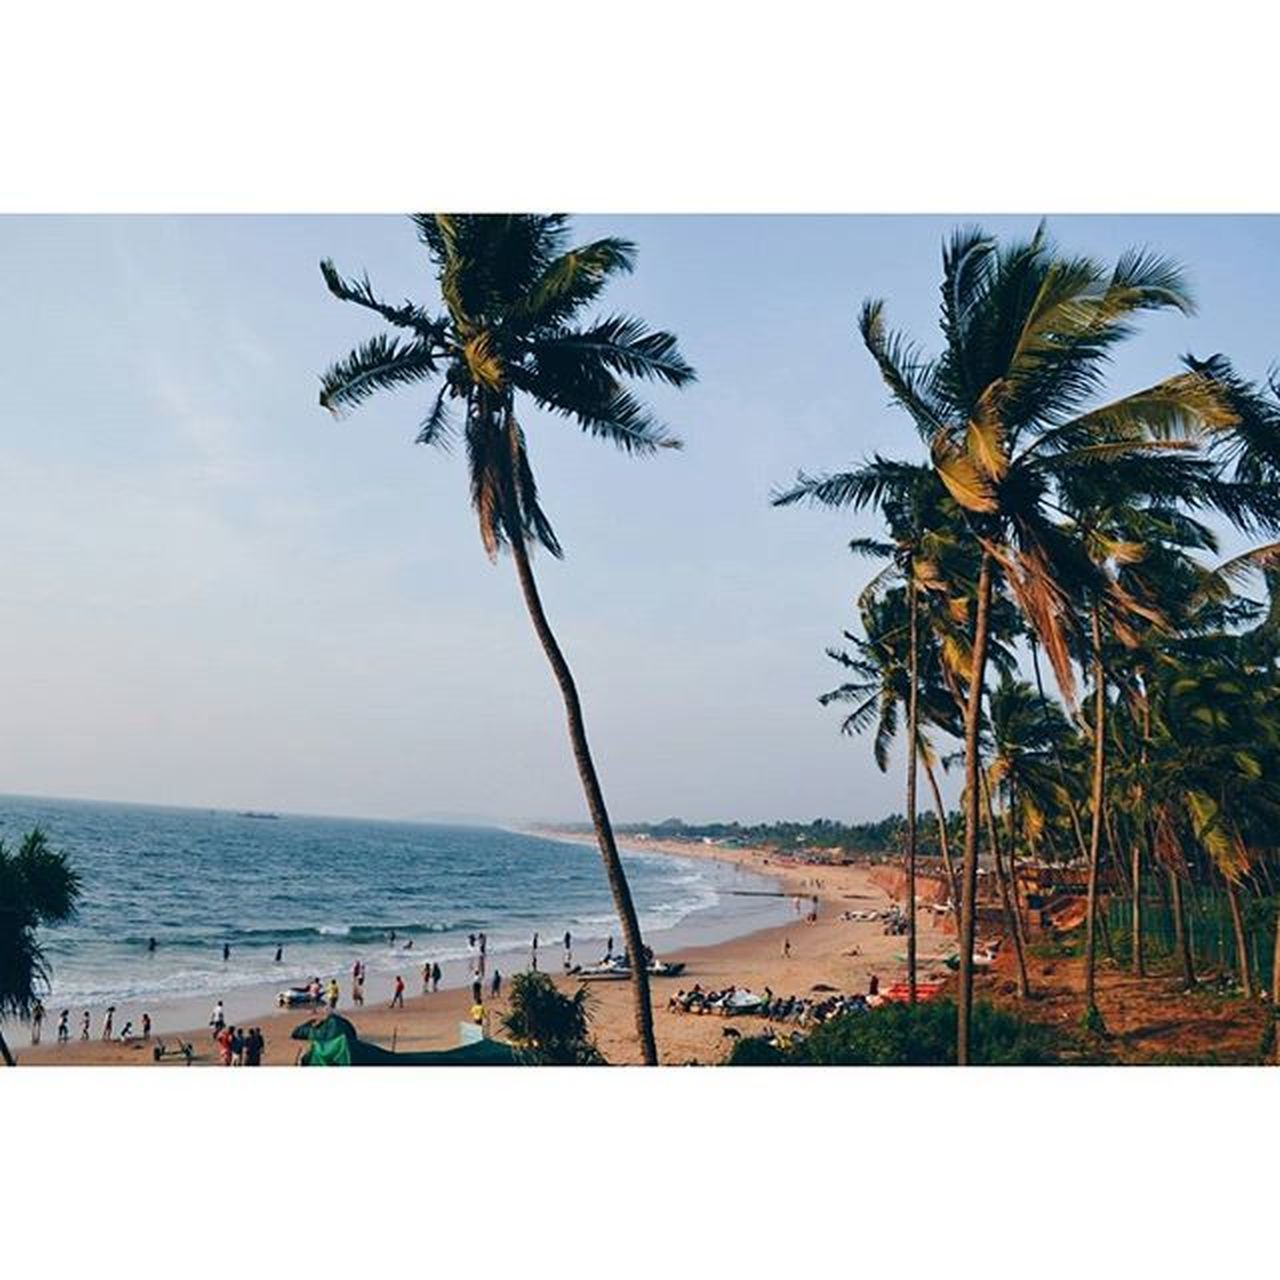 IndiaJourney India Journey Goa Sinquerimbeach Sinquerim Northgoa Beach Coconuttree VSCO Vscocam Explore Vscoexplore Vscotravel Travel